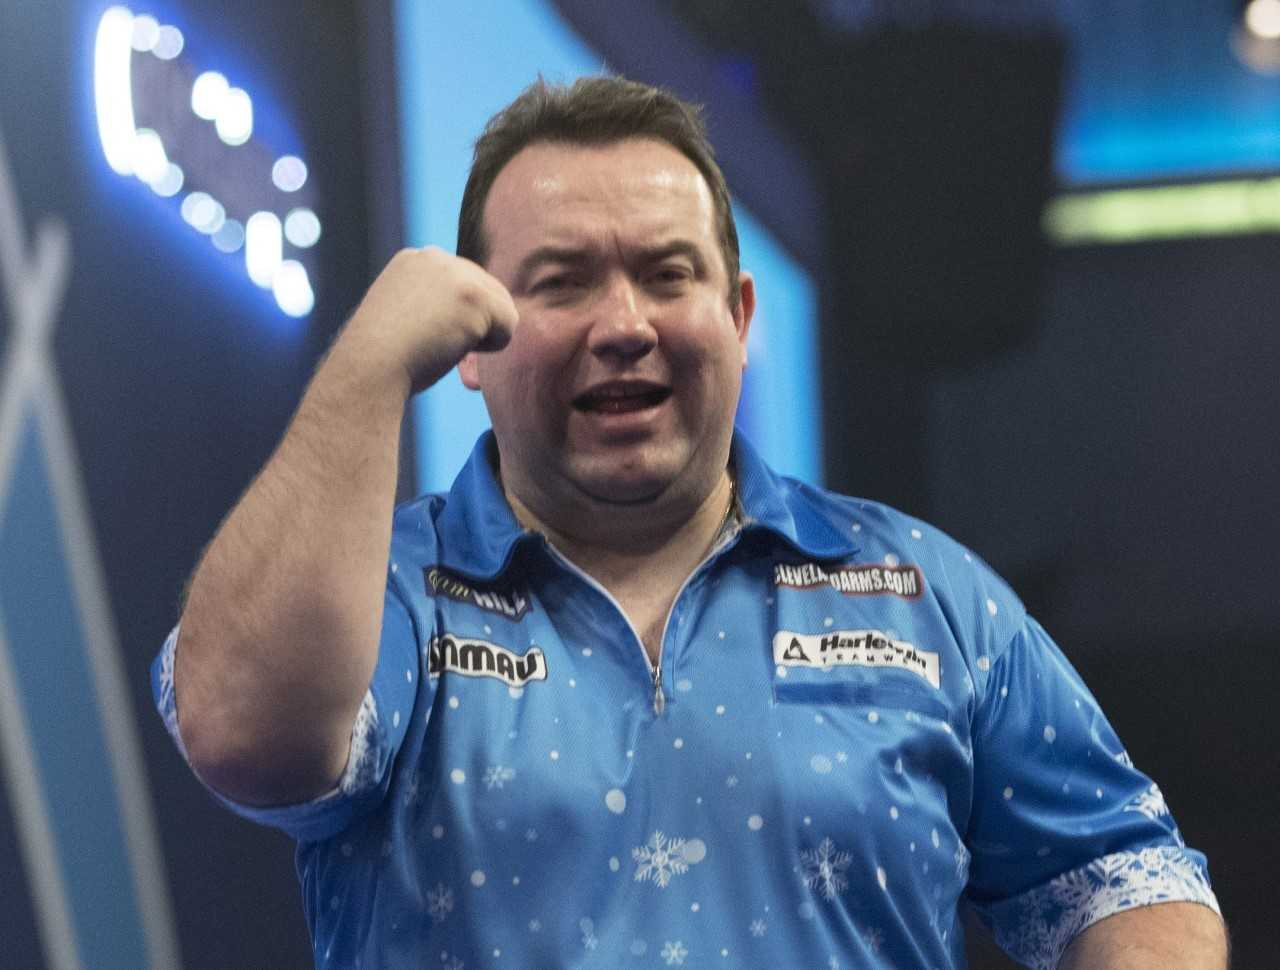 Dolan powers into last 32 at Ally Pally